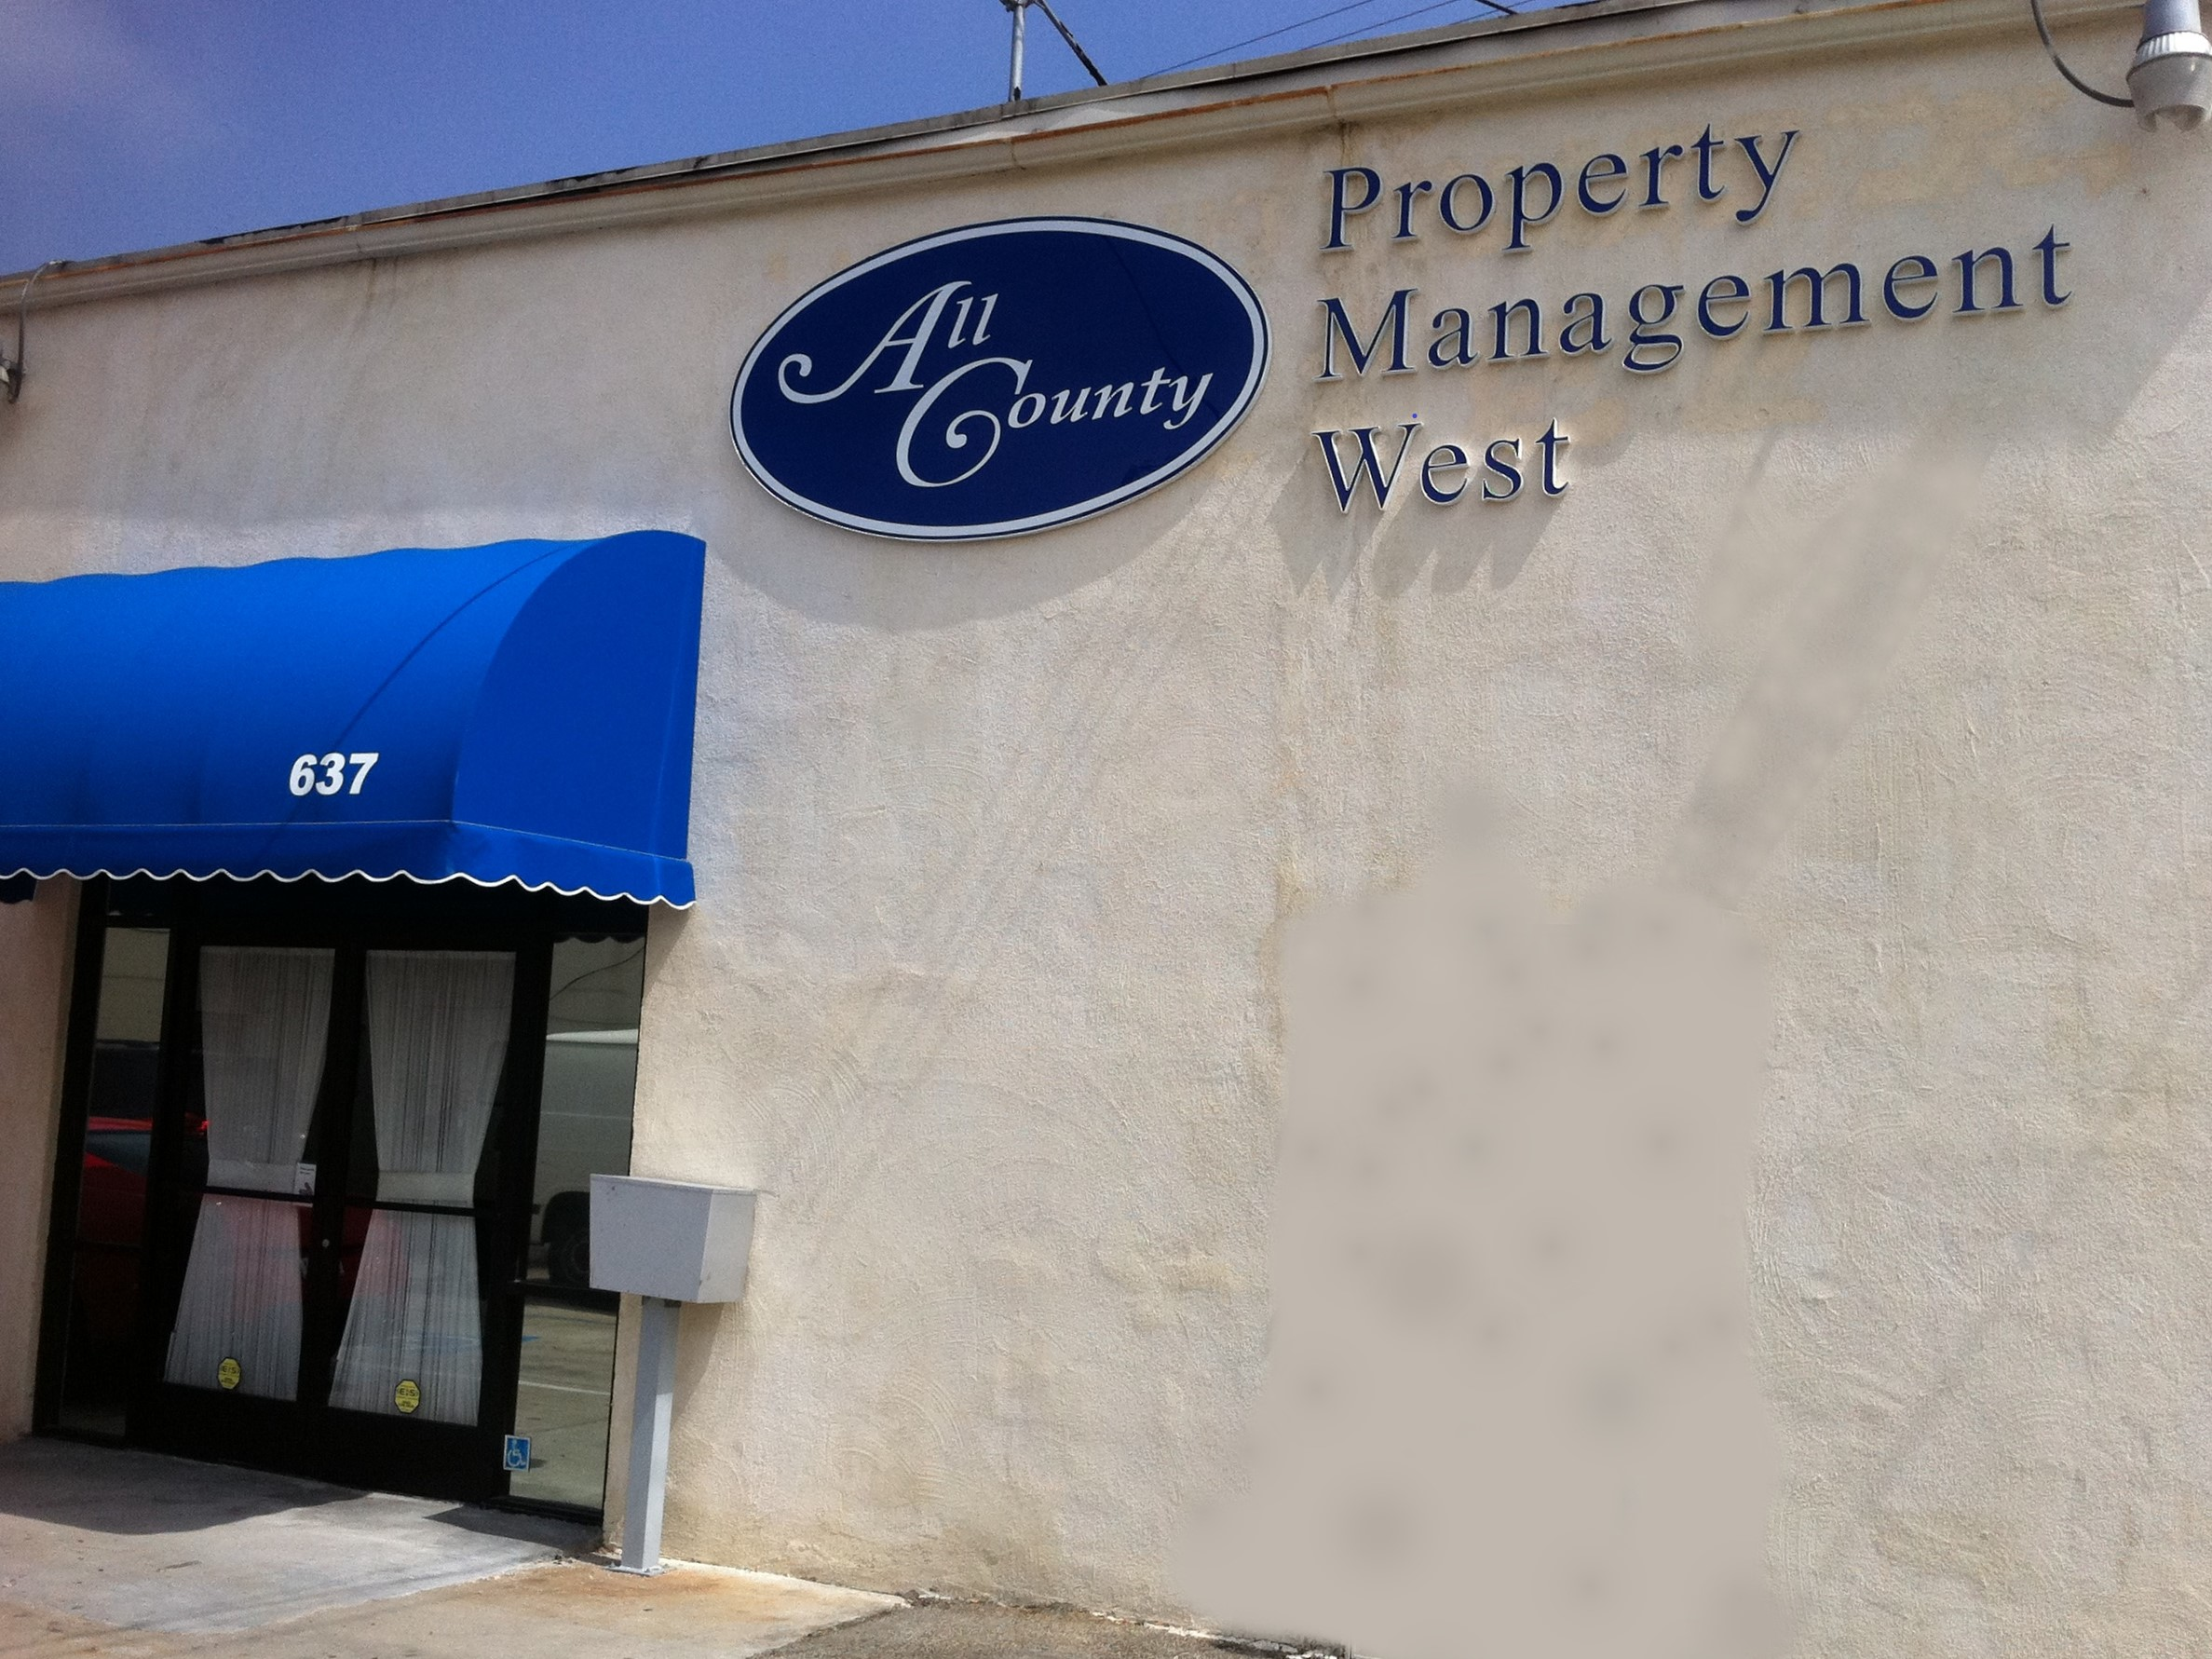 All County Property Management West